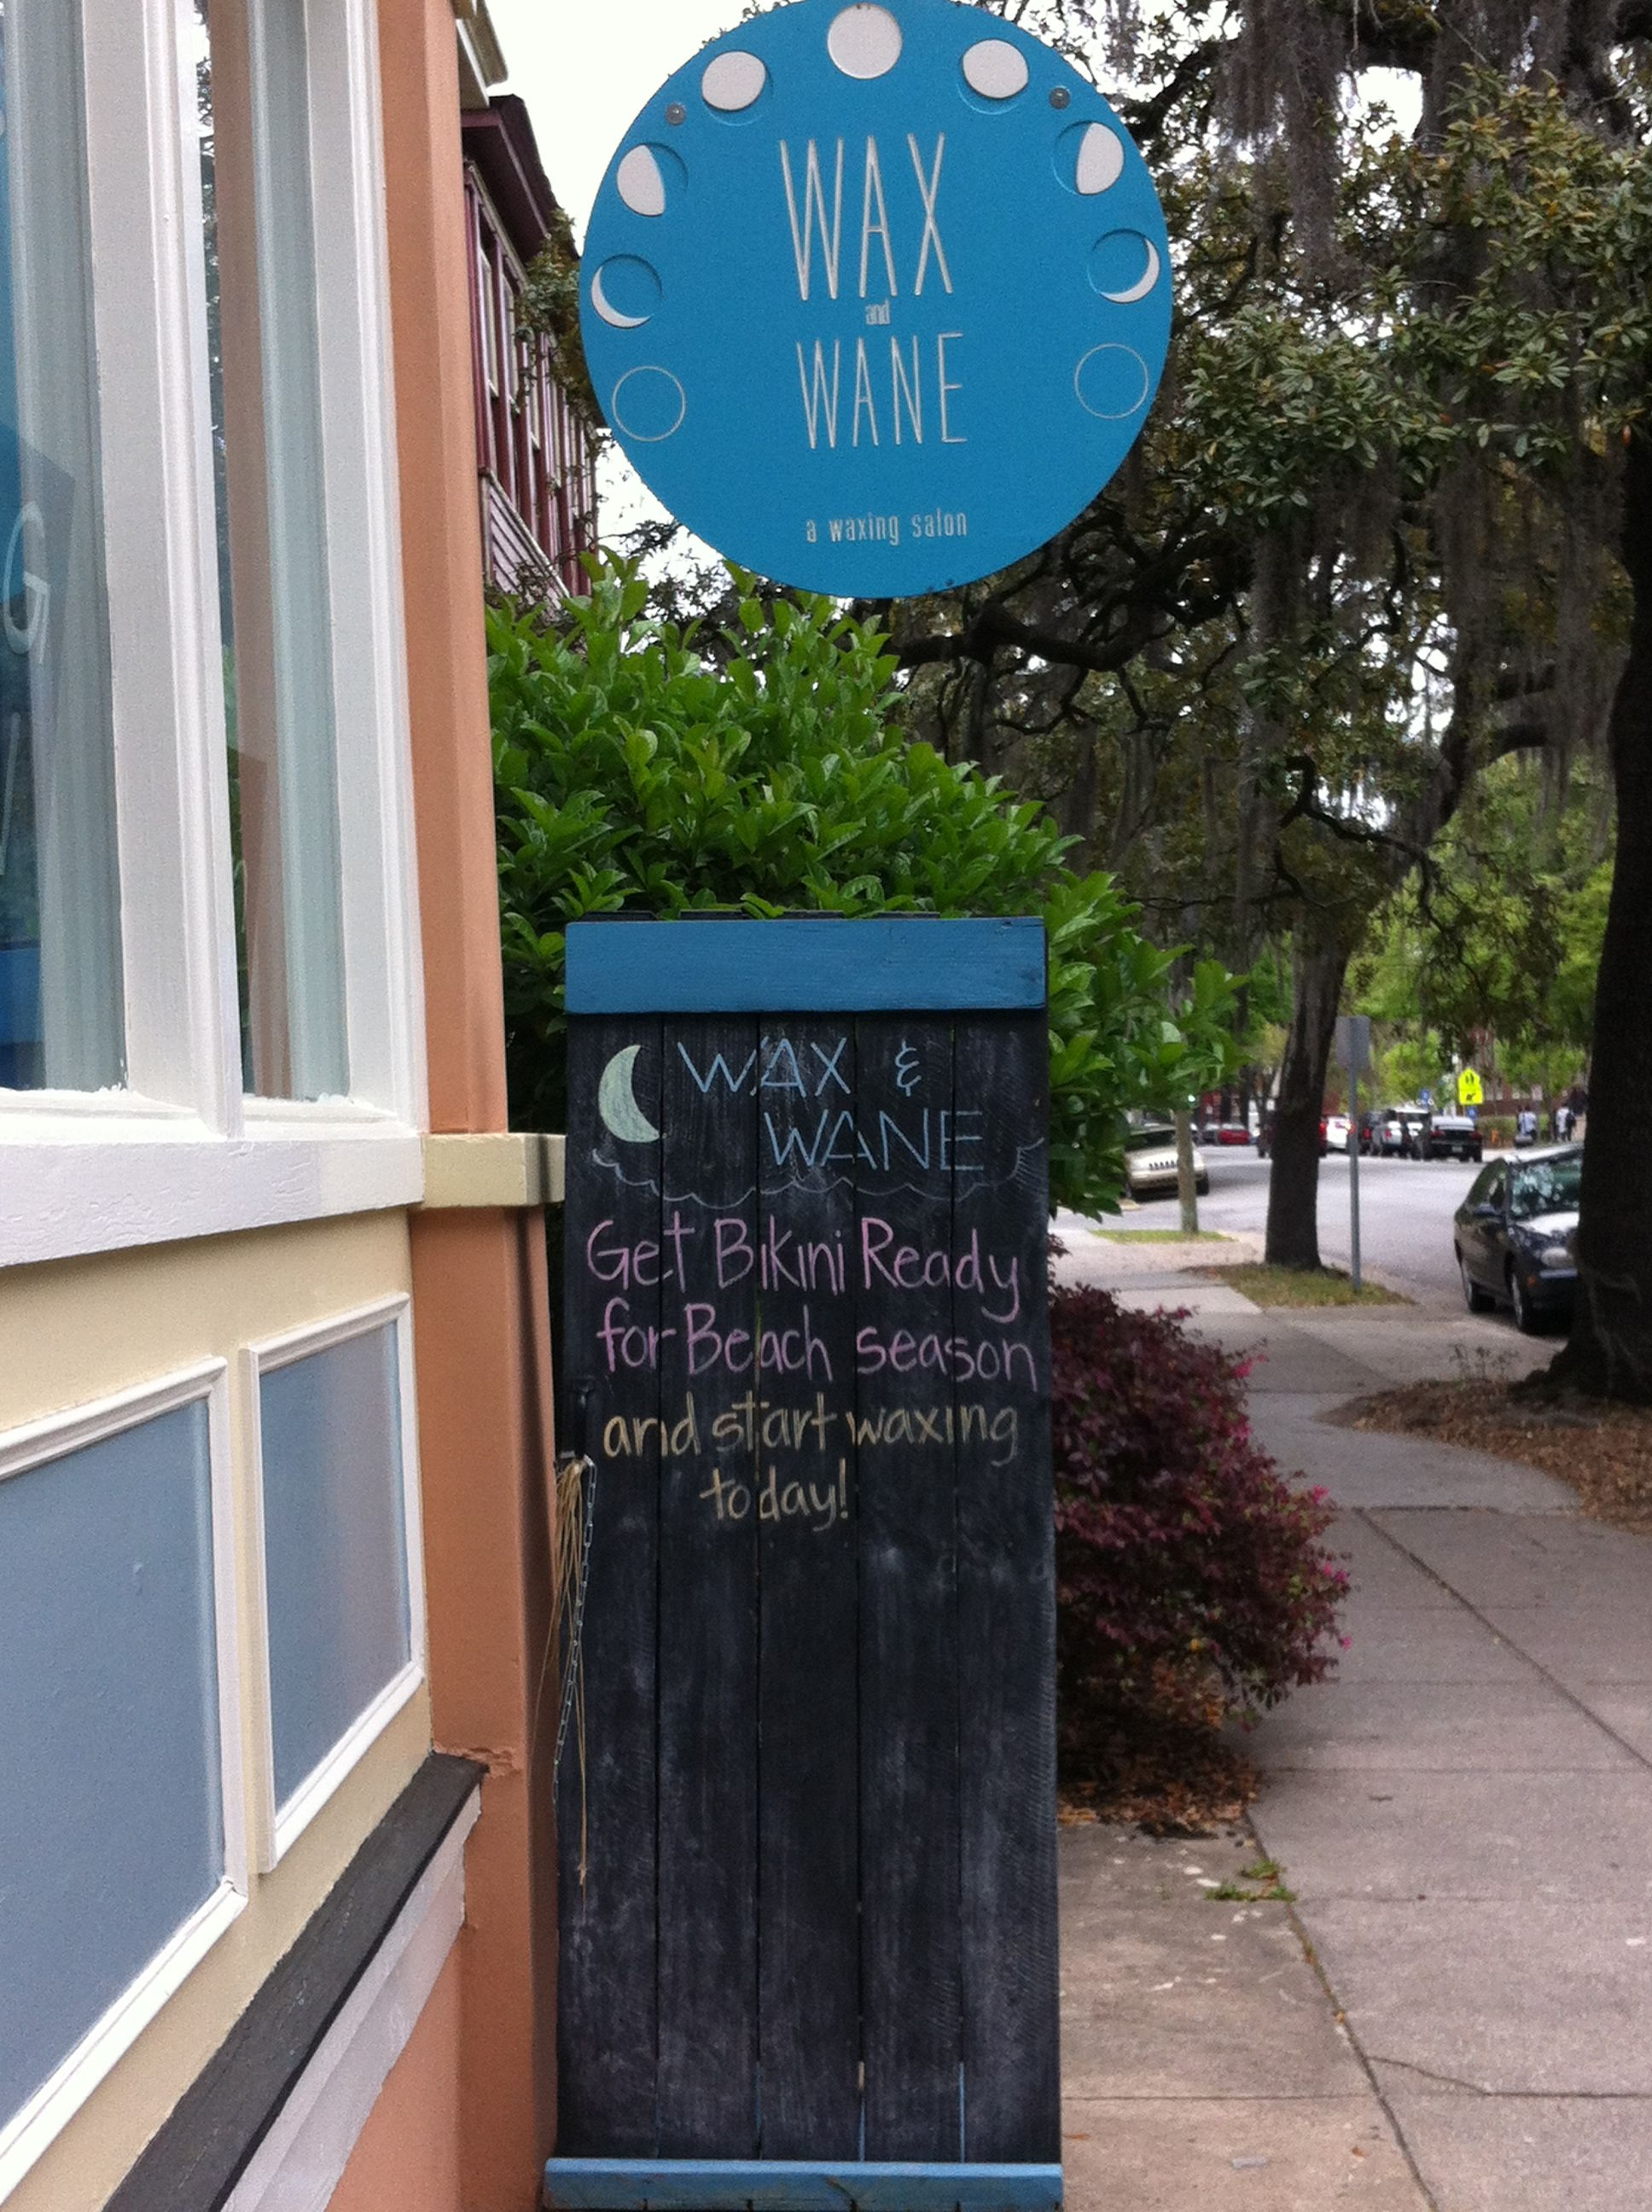 bac79224dbc This is truly the funniest name for a waxing salon ever! | Savannah ...